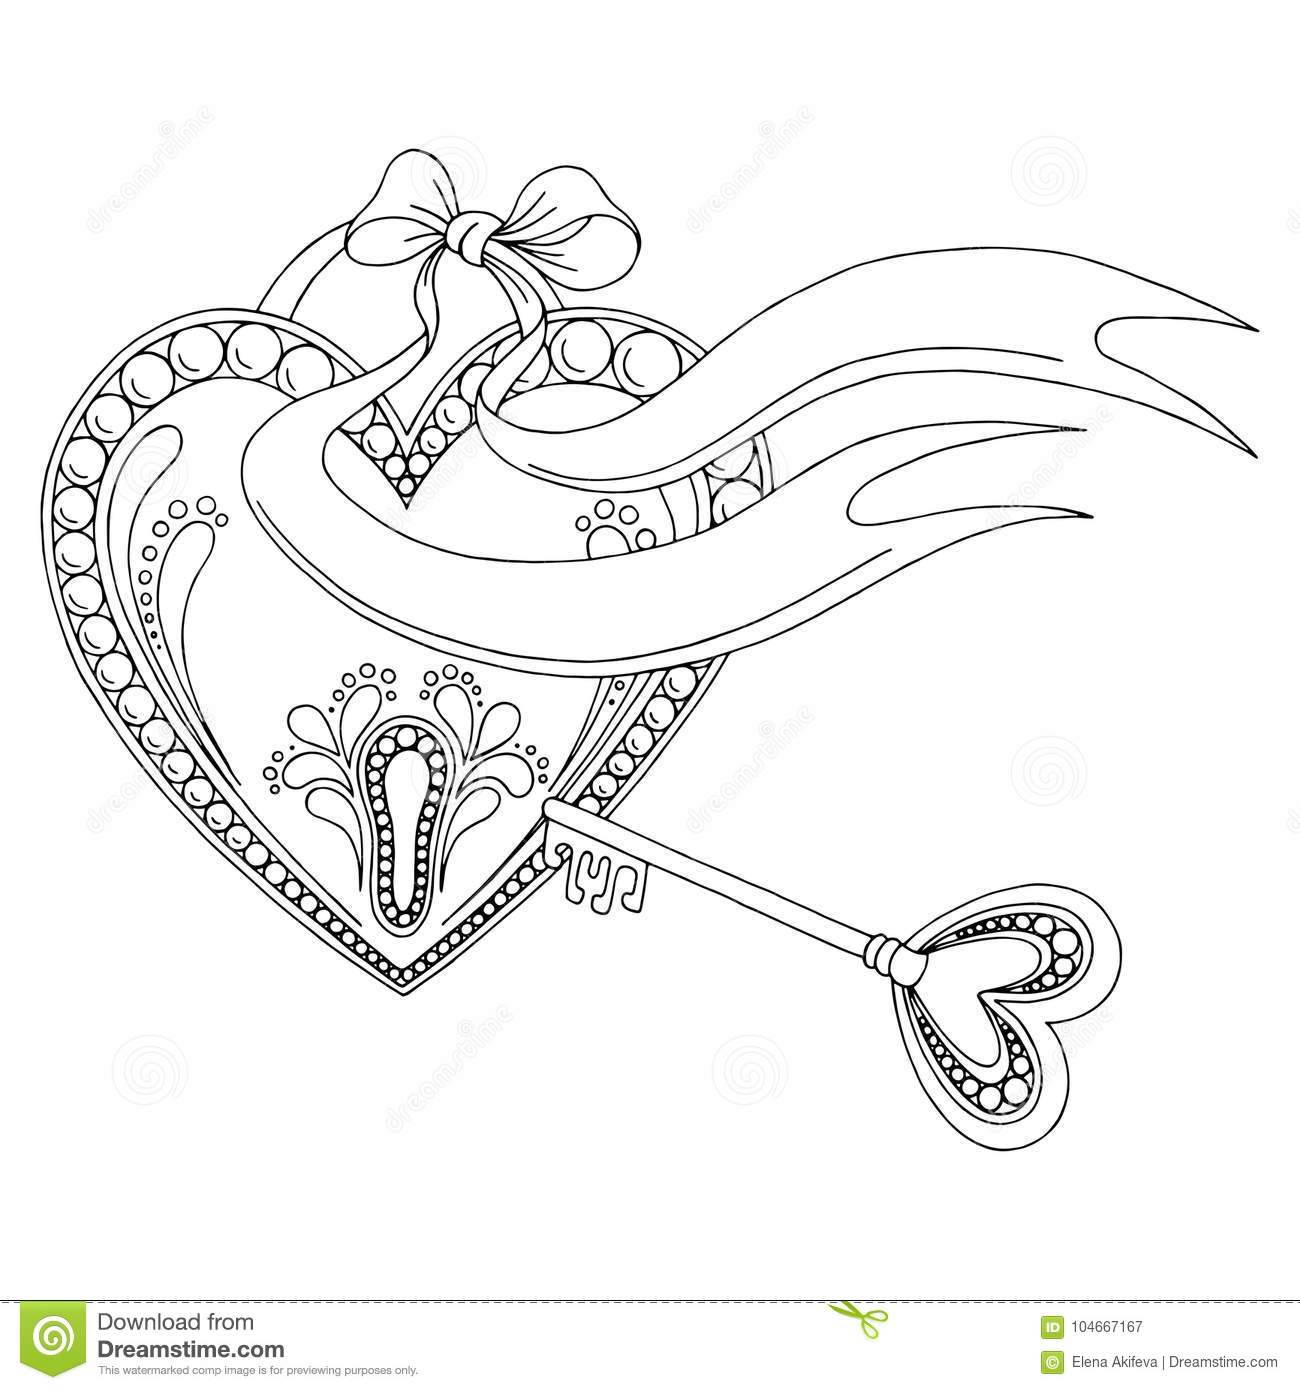 Pattern Heart Lock Key Doodle Black White Graphic Sketch Background